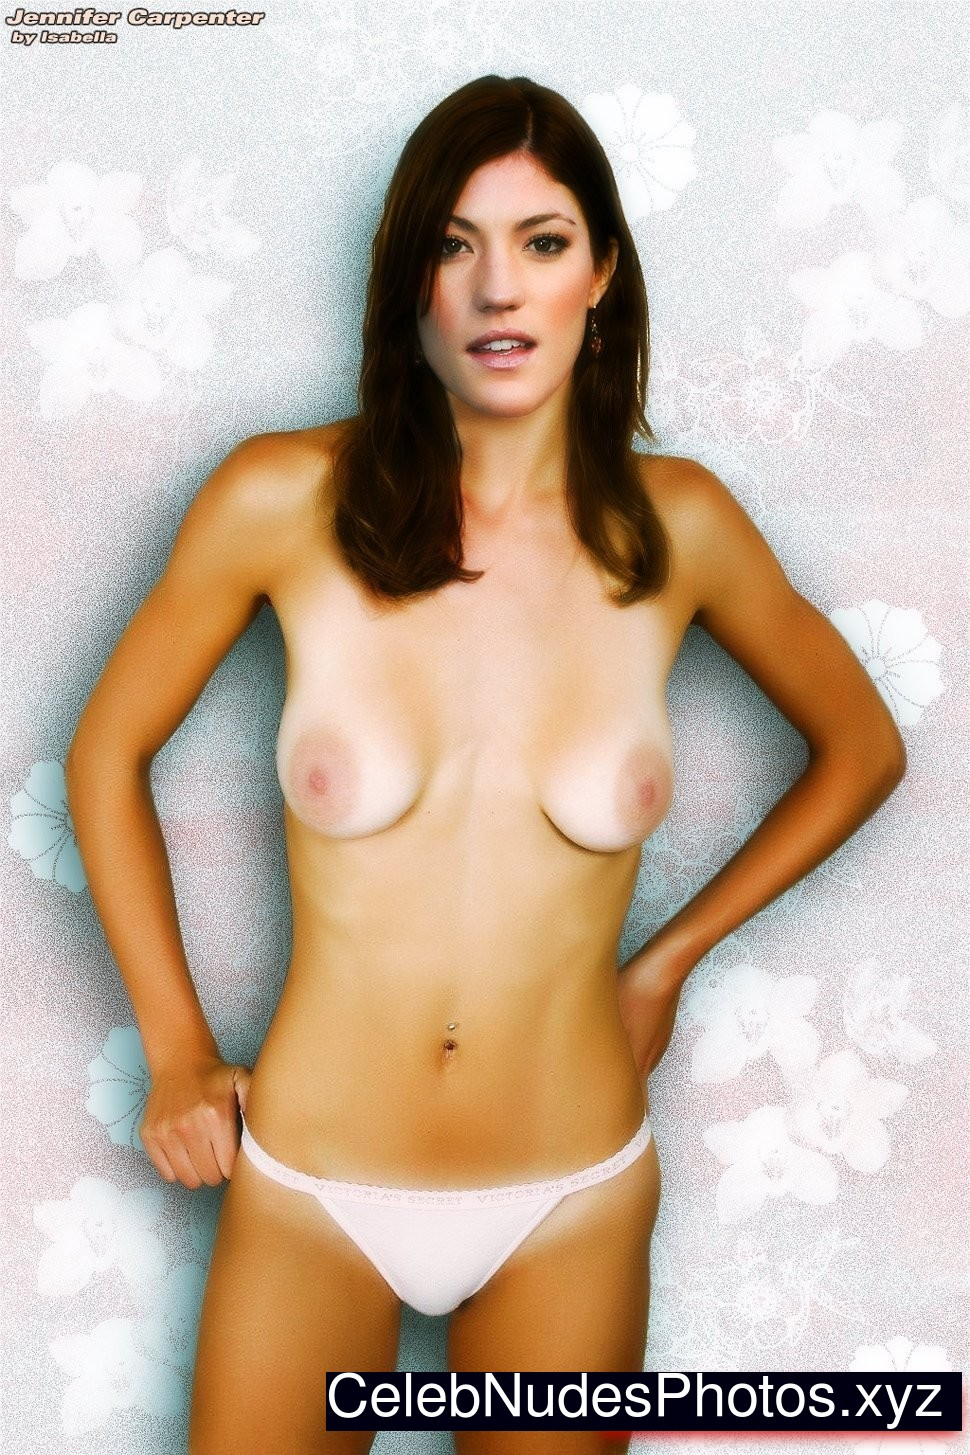 Are Jennifer carpenter real nude